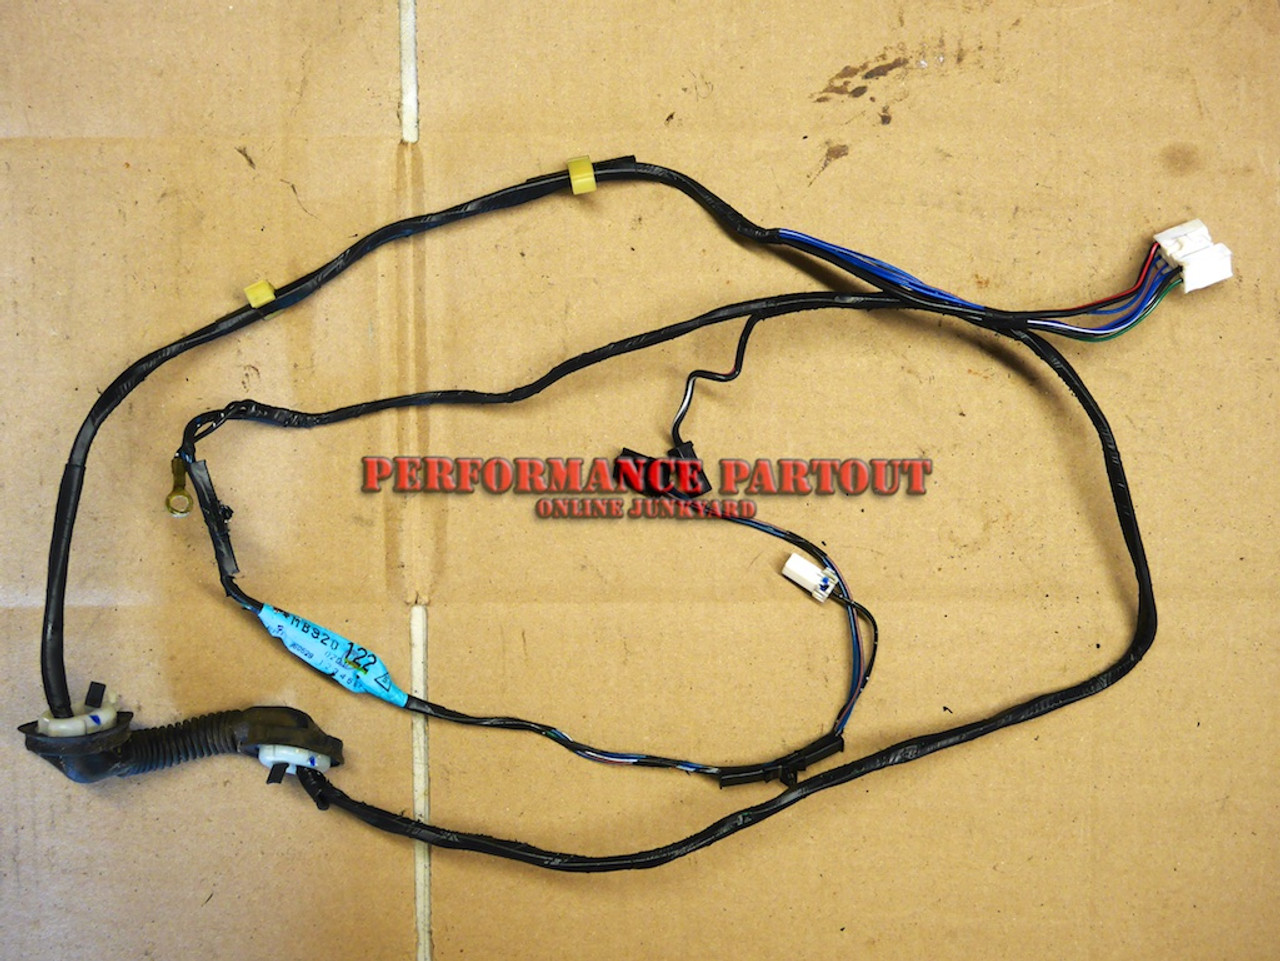 hight resolution of hatch wiring harness 2g dsm performance partout 2008 subaru outback hatch wiring harness hatch wiring harness